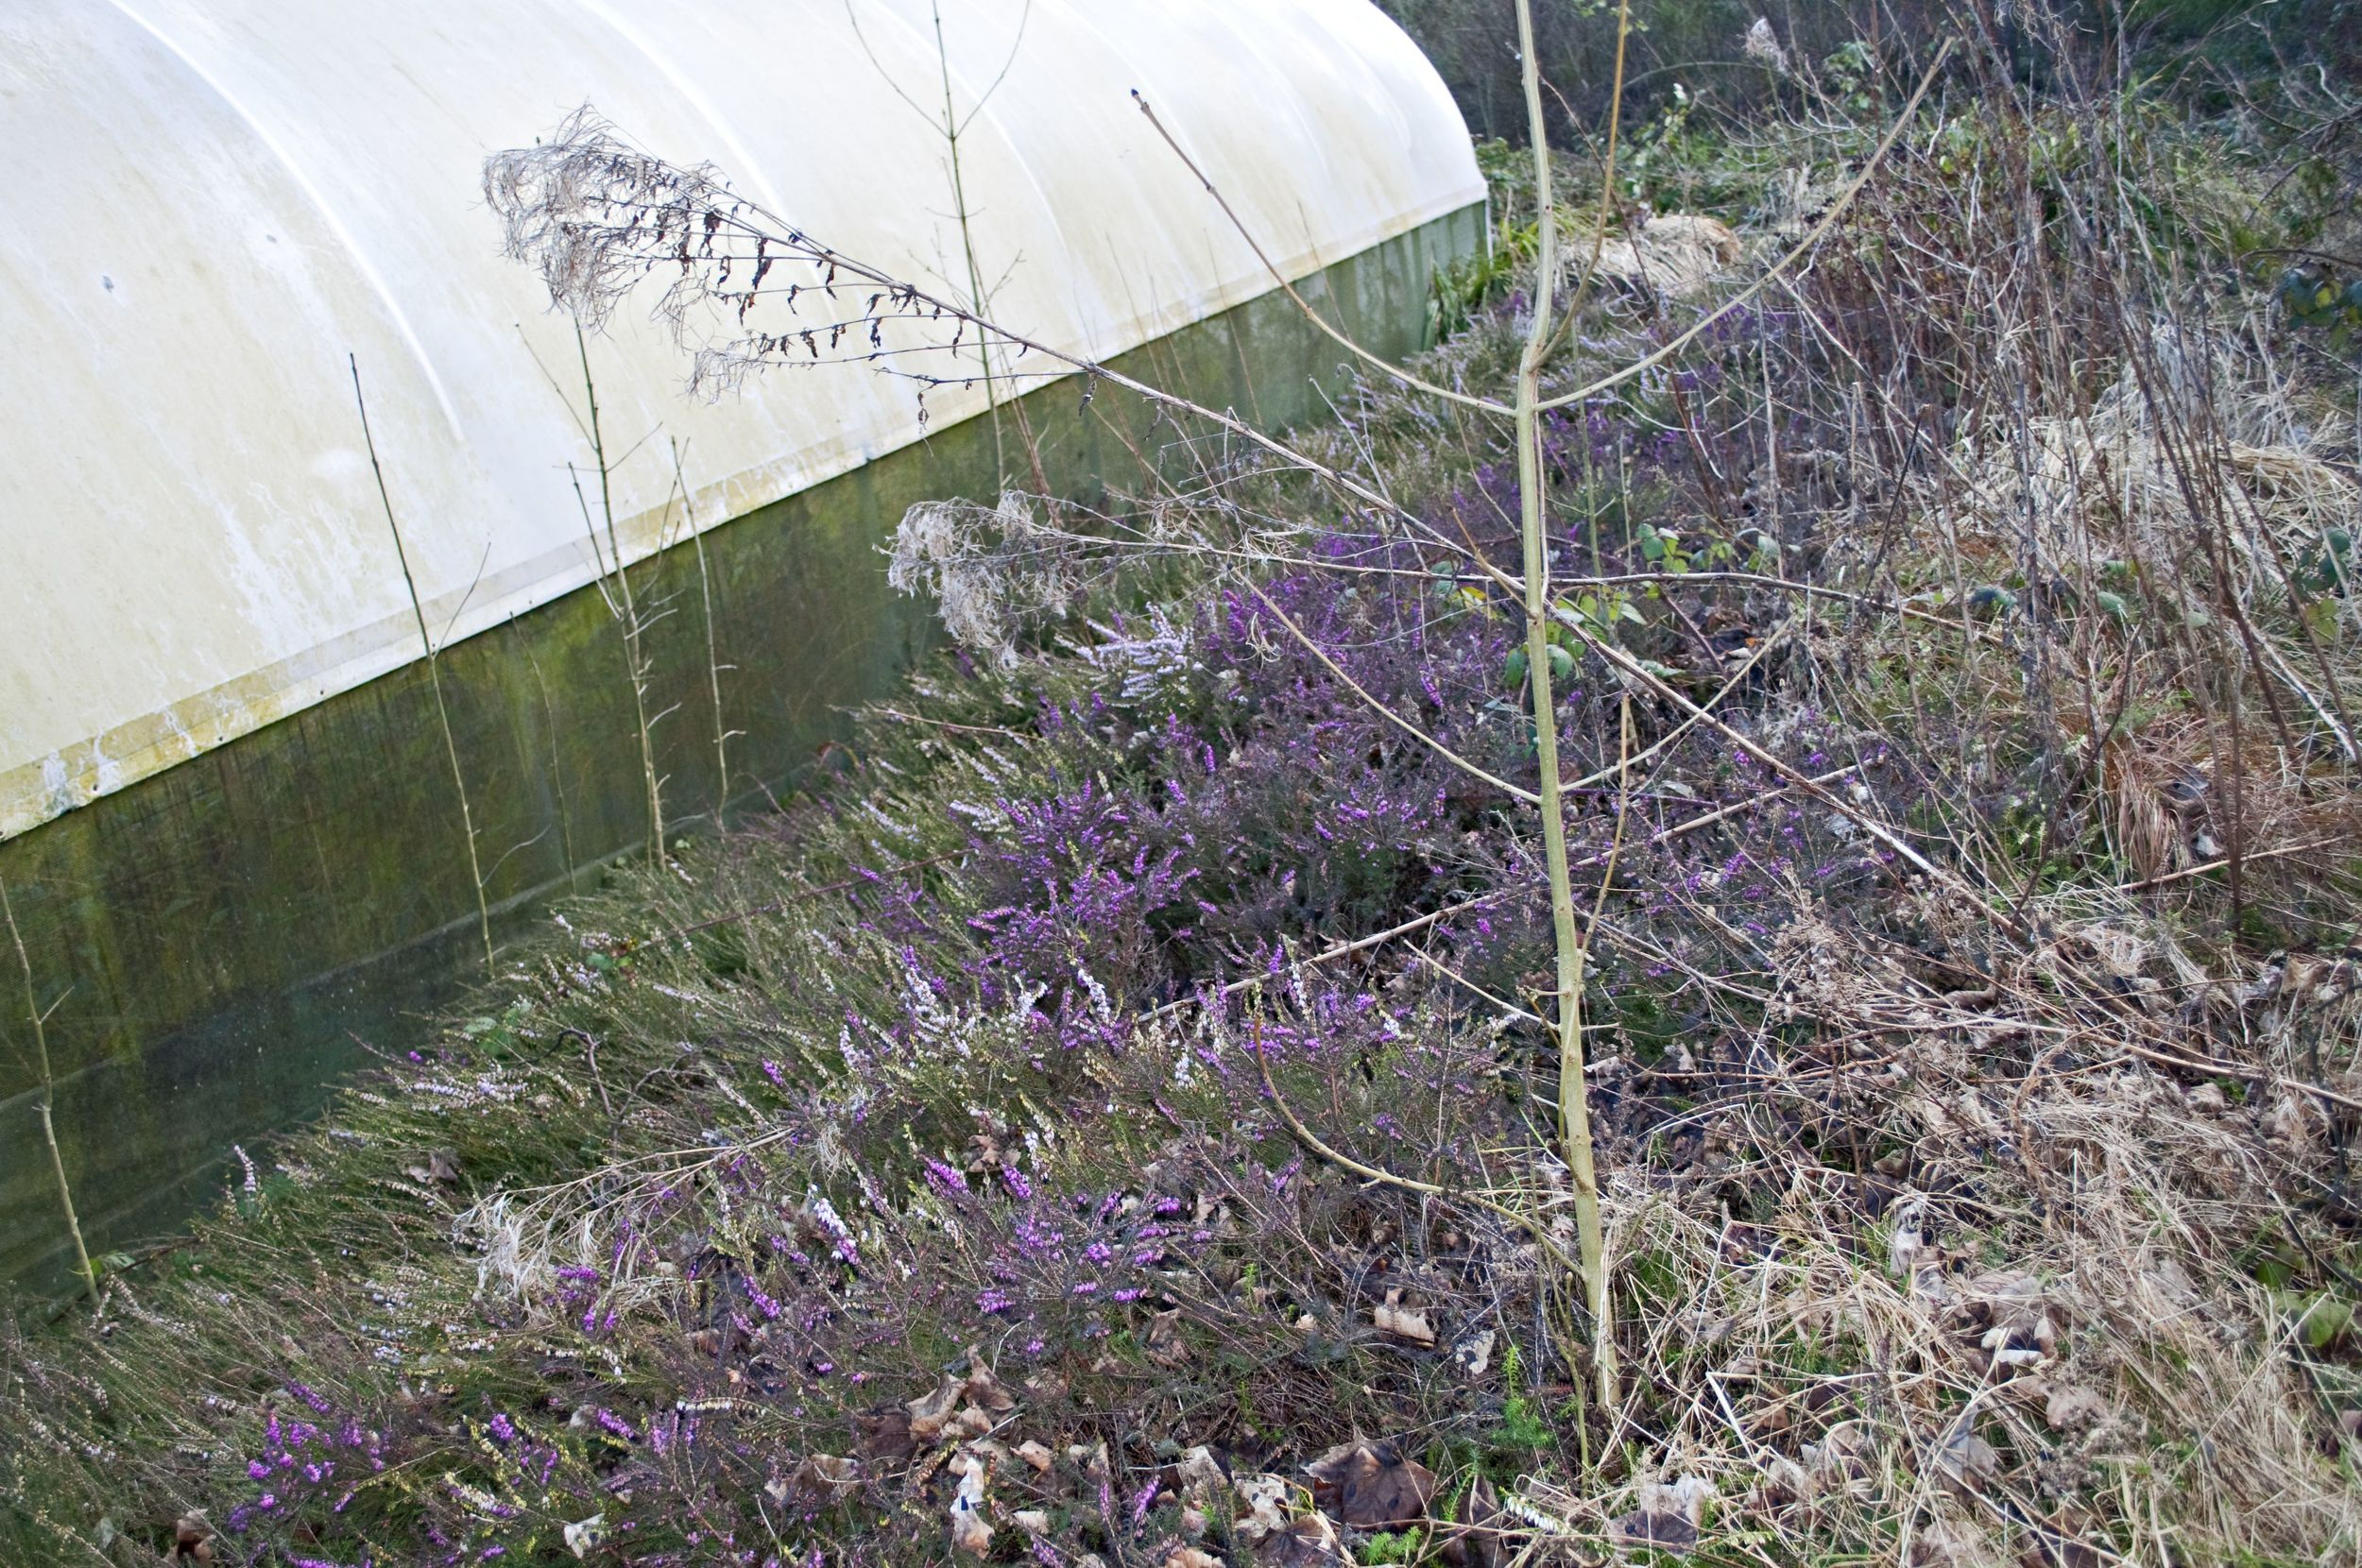 The heather bed